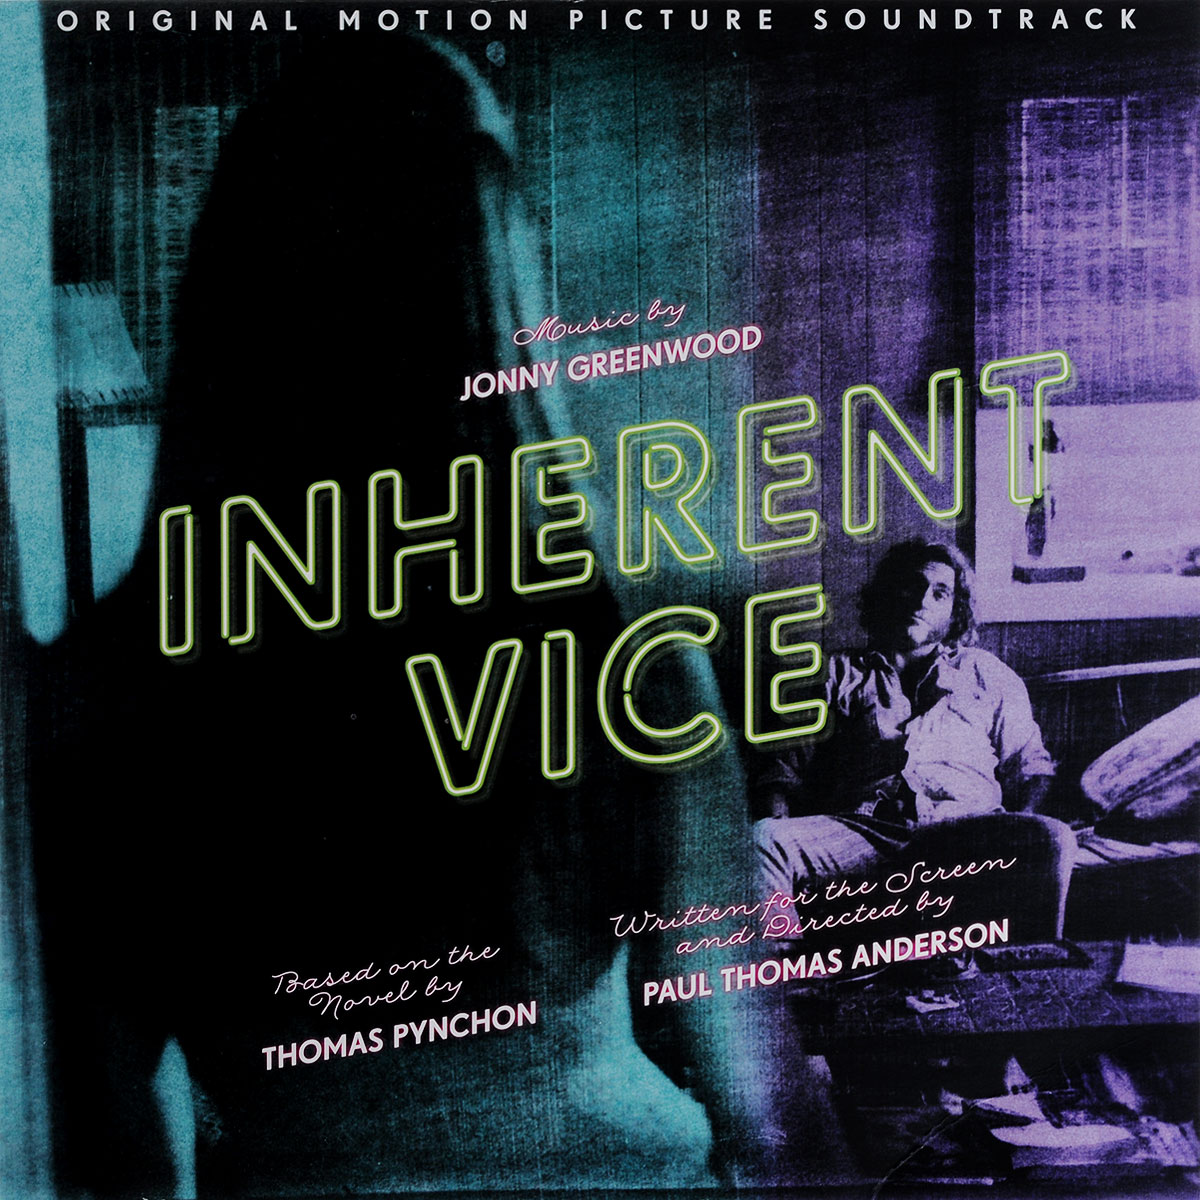 Jonny Greenwood. Inherent Vice. Original Motion Picture Soundtrack (2 LP) 3 трусов шортов mentine